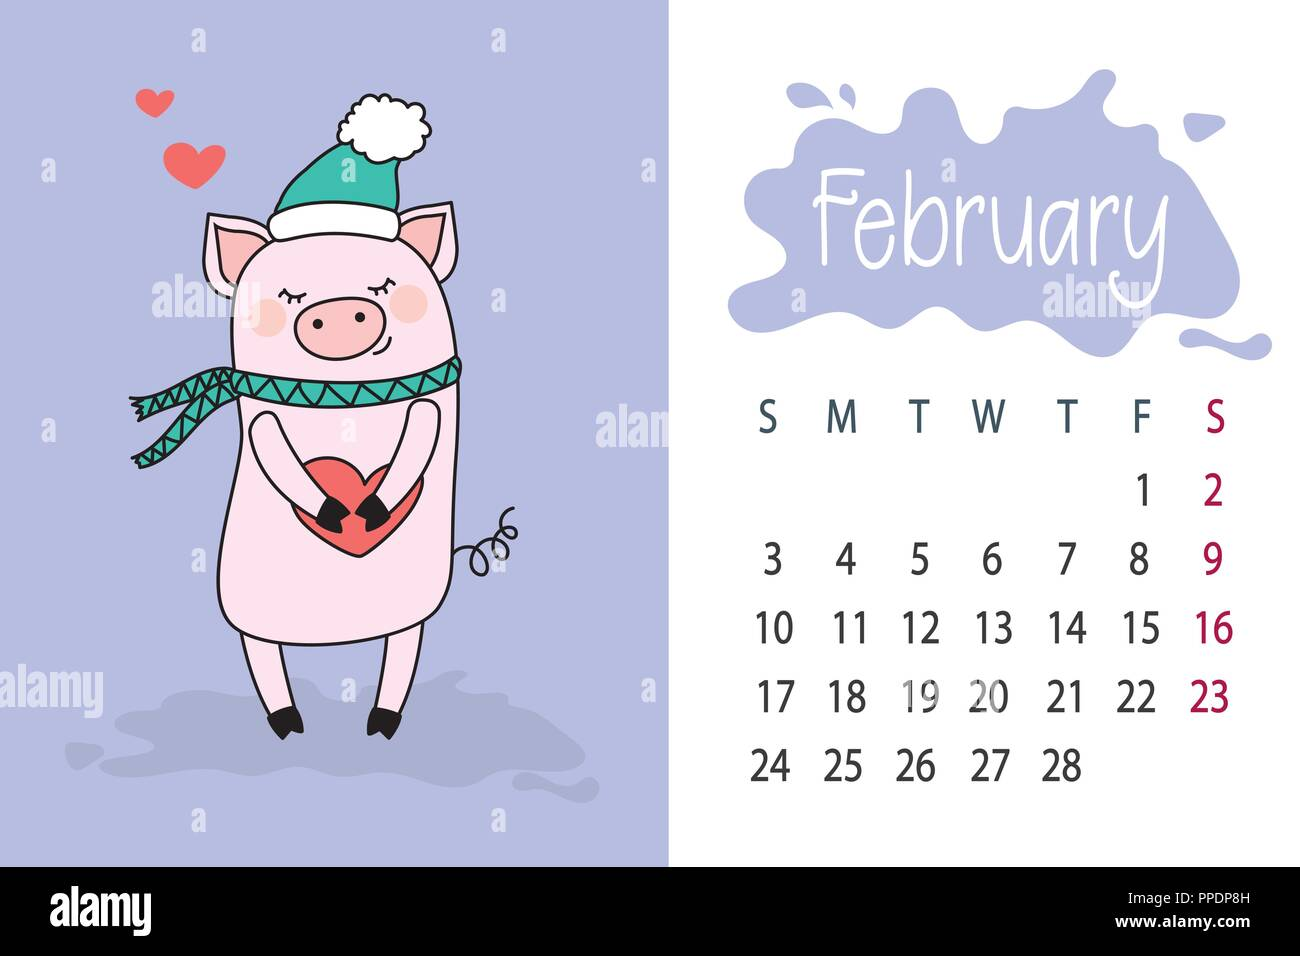 Calendar February 9 2019 February month 2019 year calendar page with cute pink pig Stock